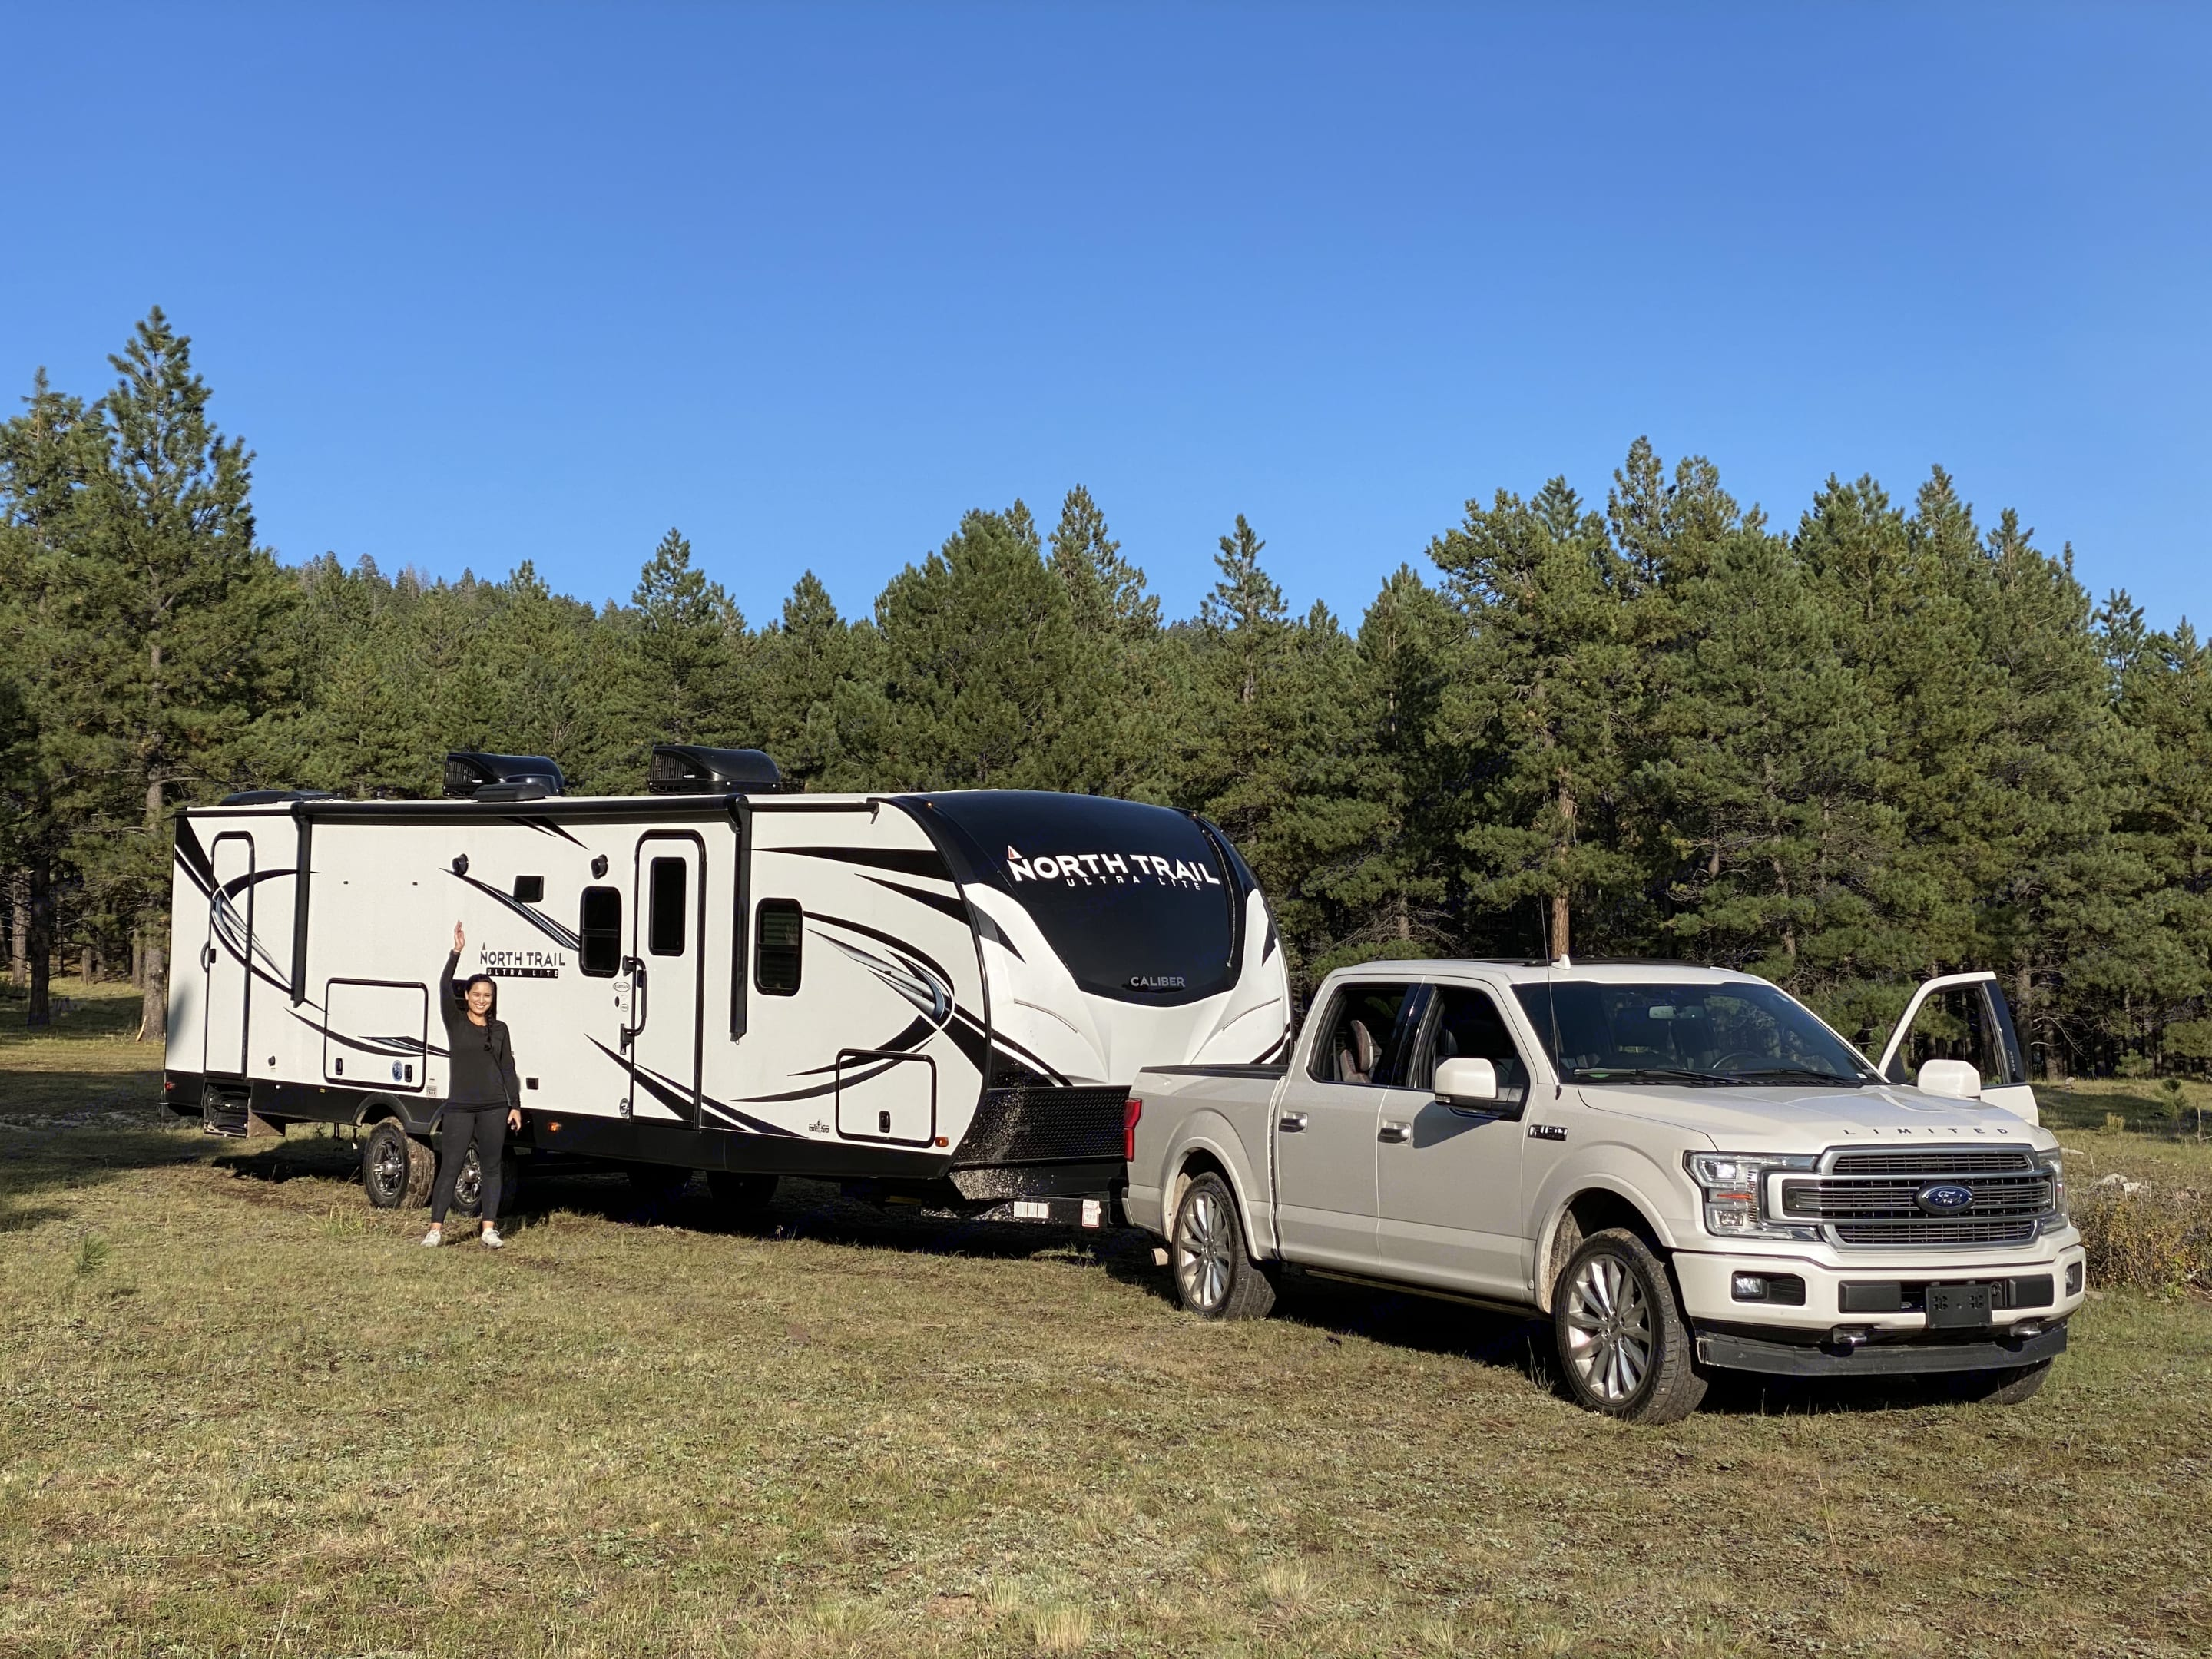 Maiden Voyage: Boon-docking in northern NM. Heartland North Trail Caliber 2021